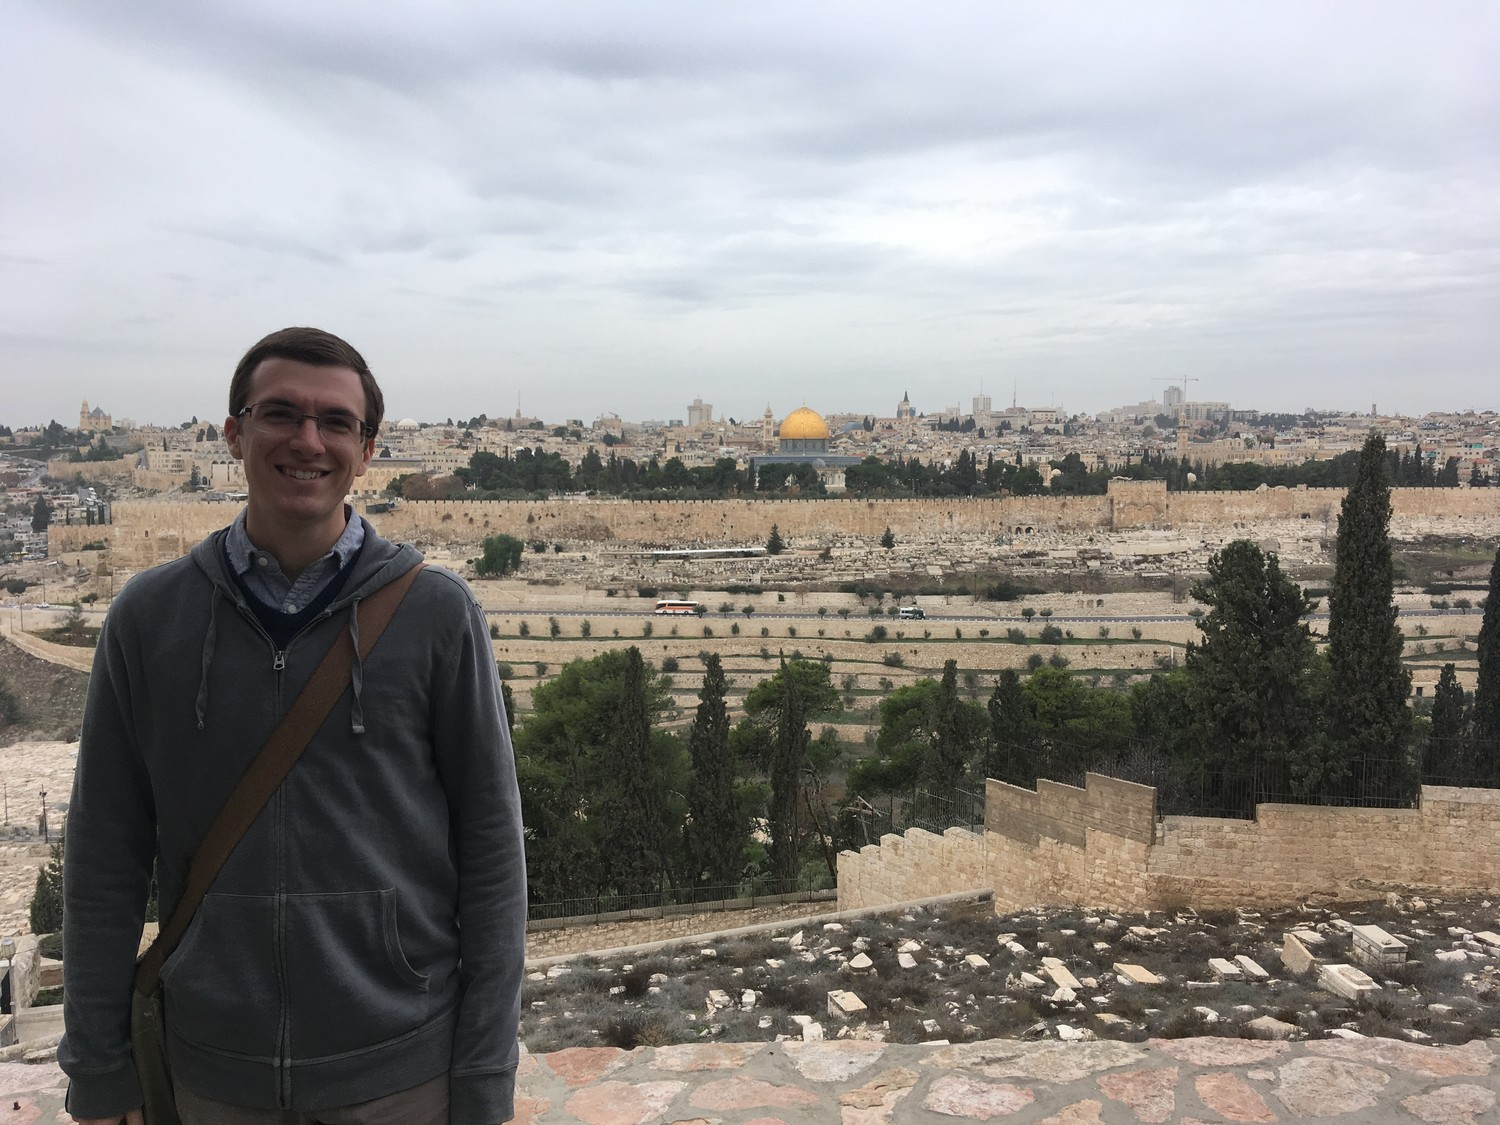 Brad Berhorst pauses for a photo in the Mount of Olives during a pilgrimage to the Holy Land over Christmas 2017 and New Years of 2018. Behind him is the Old City portion of Jerusalem.